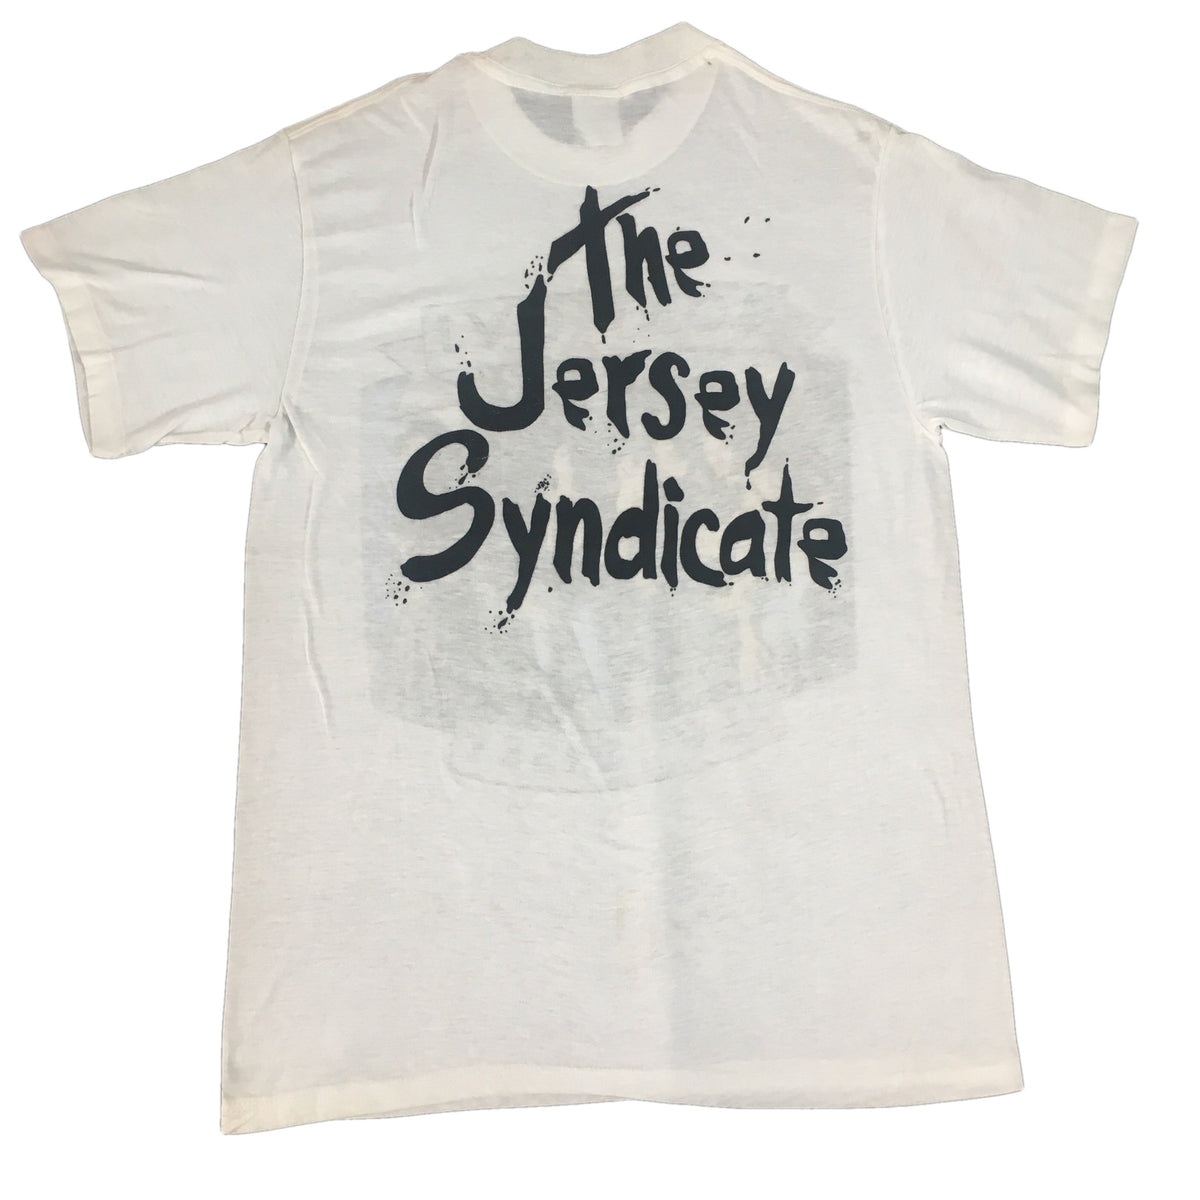 "Vintage Bon Jovi ""The Jersey Syndicate"" T-Shirt"